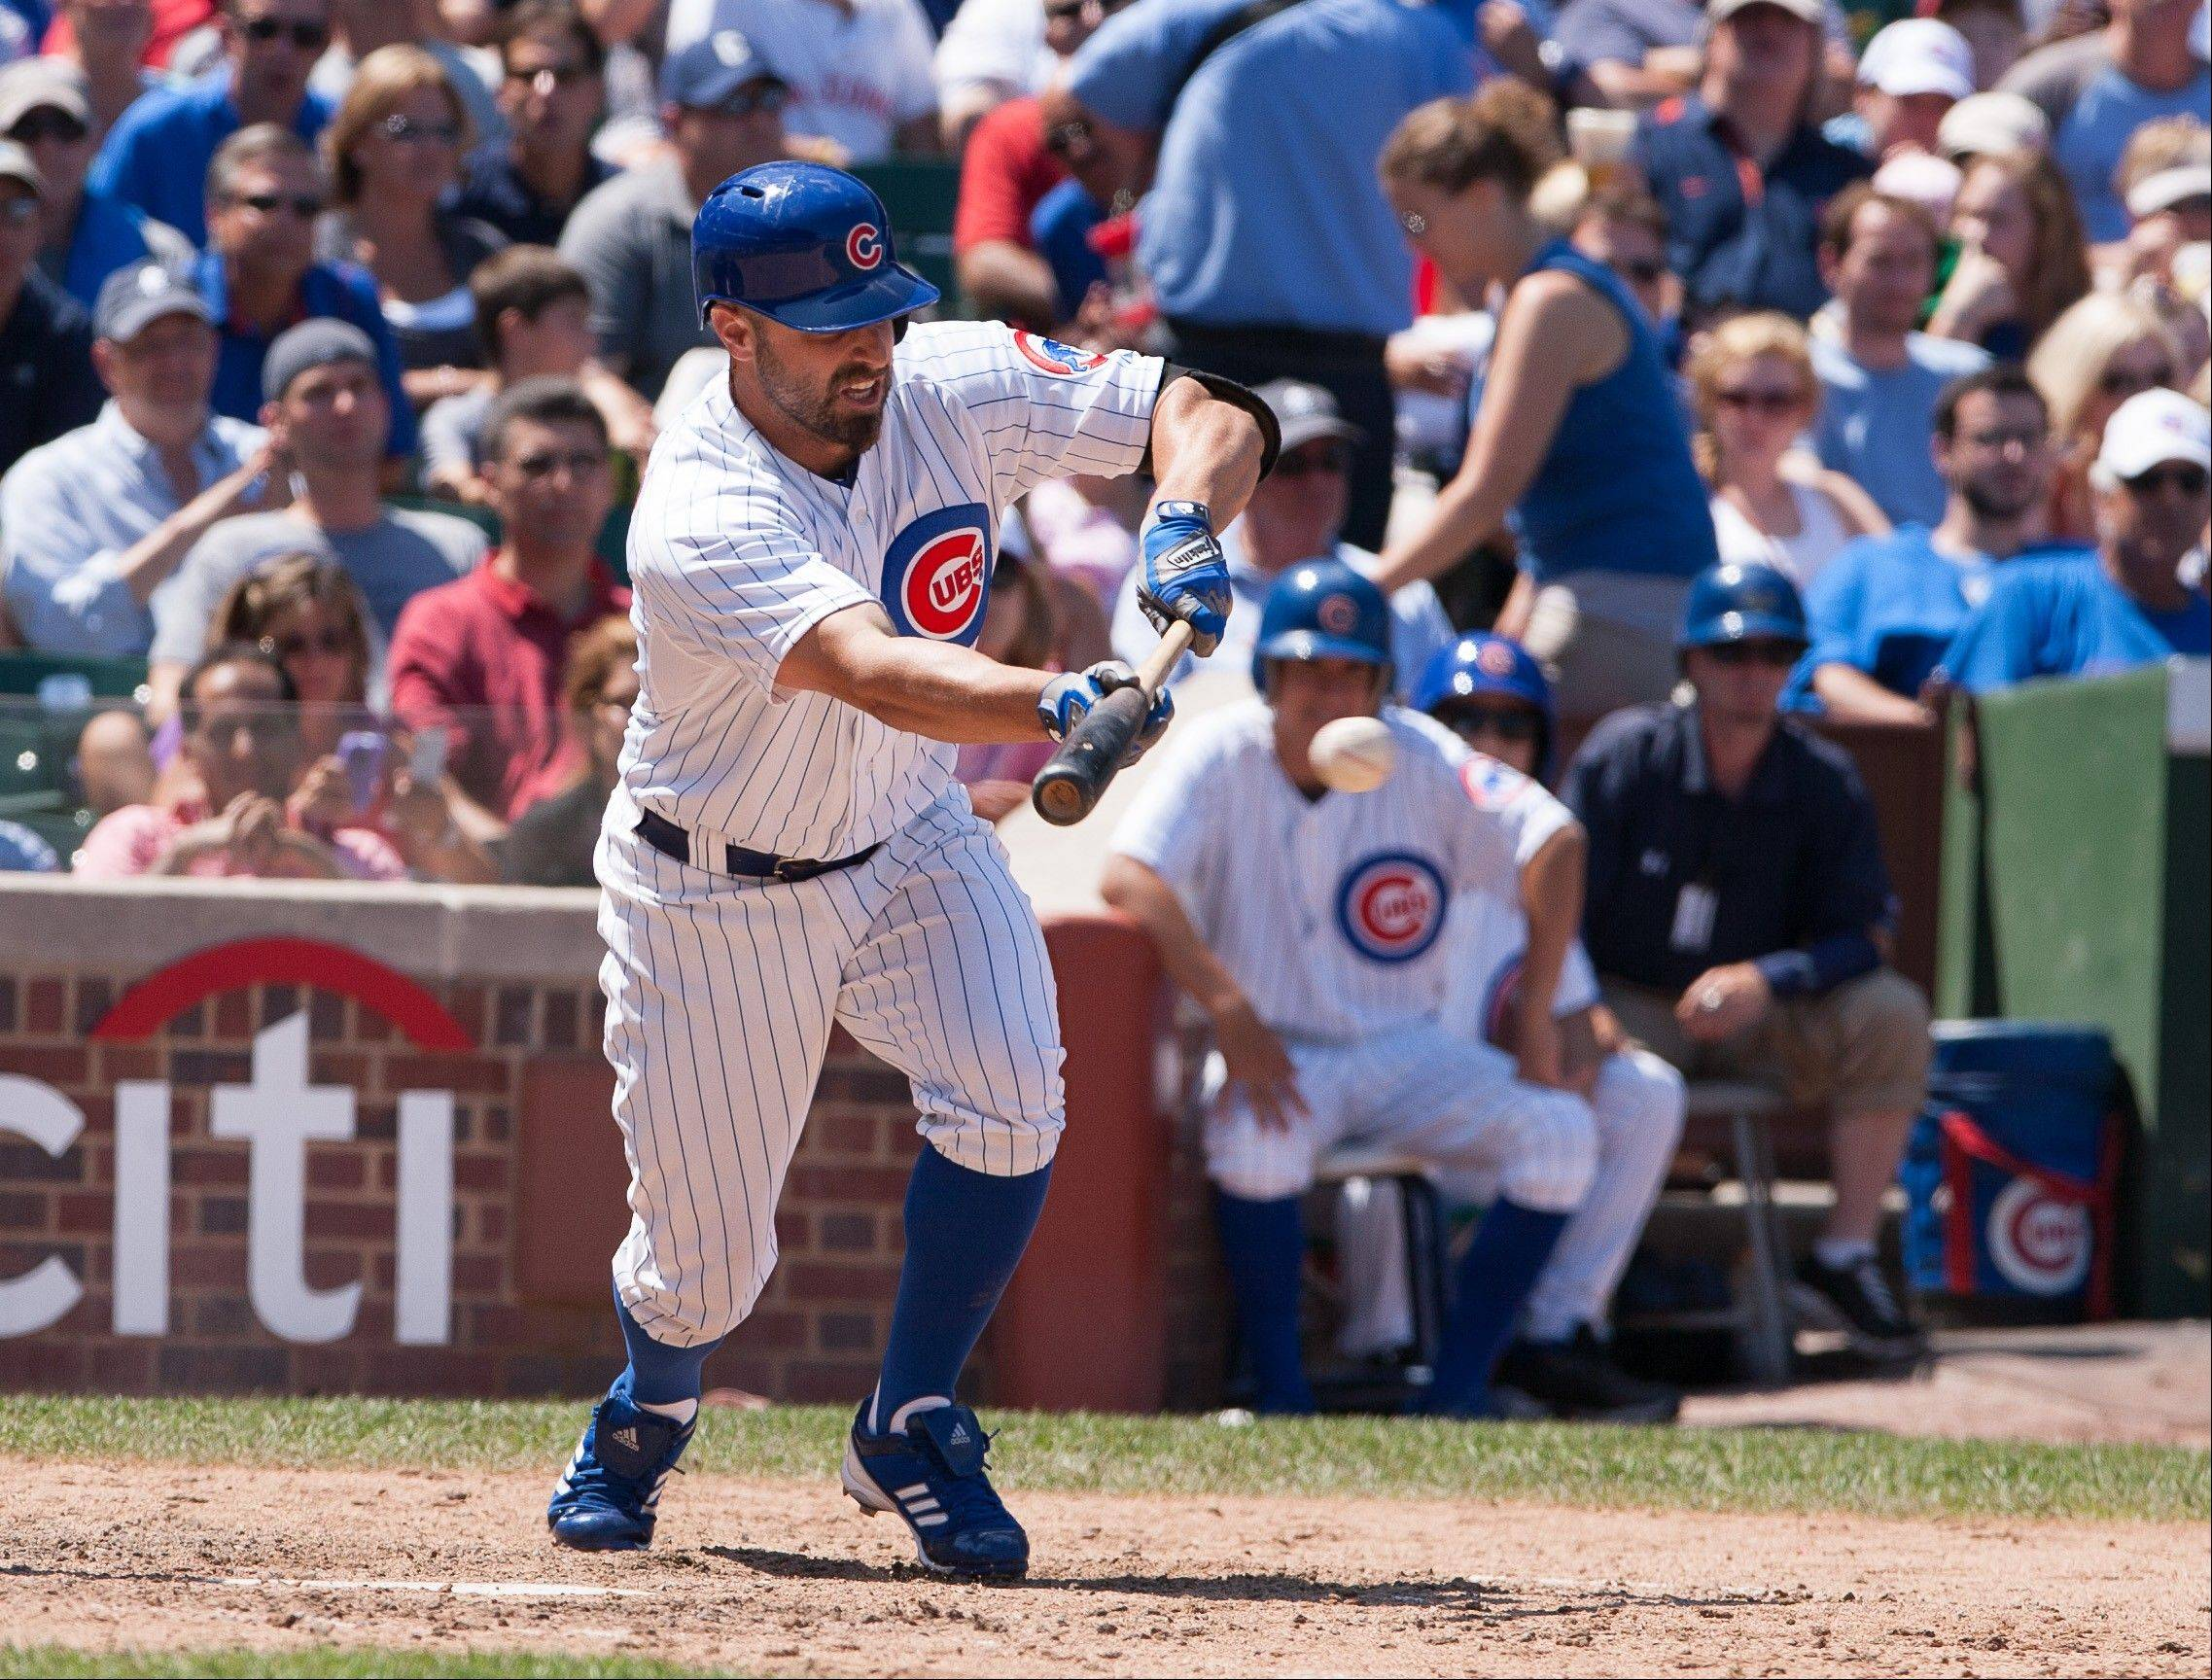 Reed Johnson puts down his RBI bunt single in the seventh inning Saturday at Wrigley Field to give the Cubs a 3-2 lead.